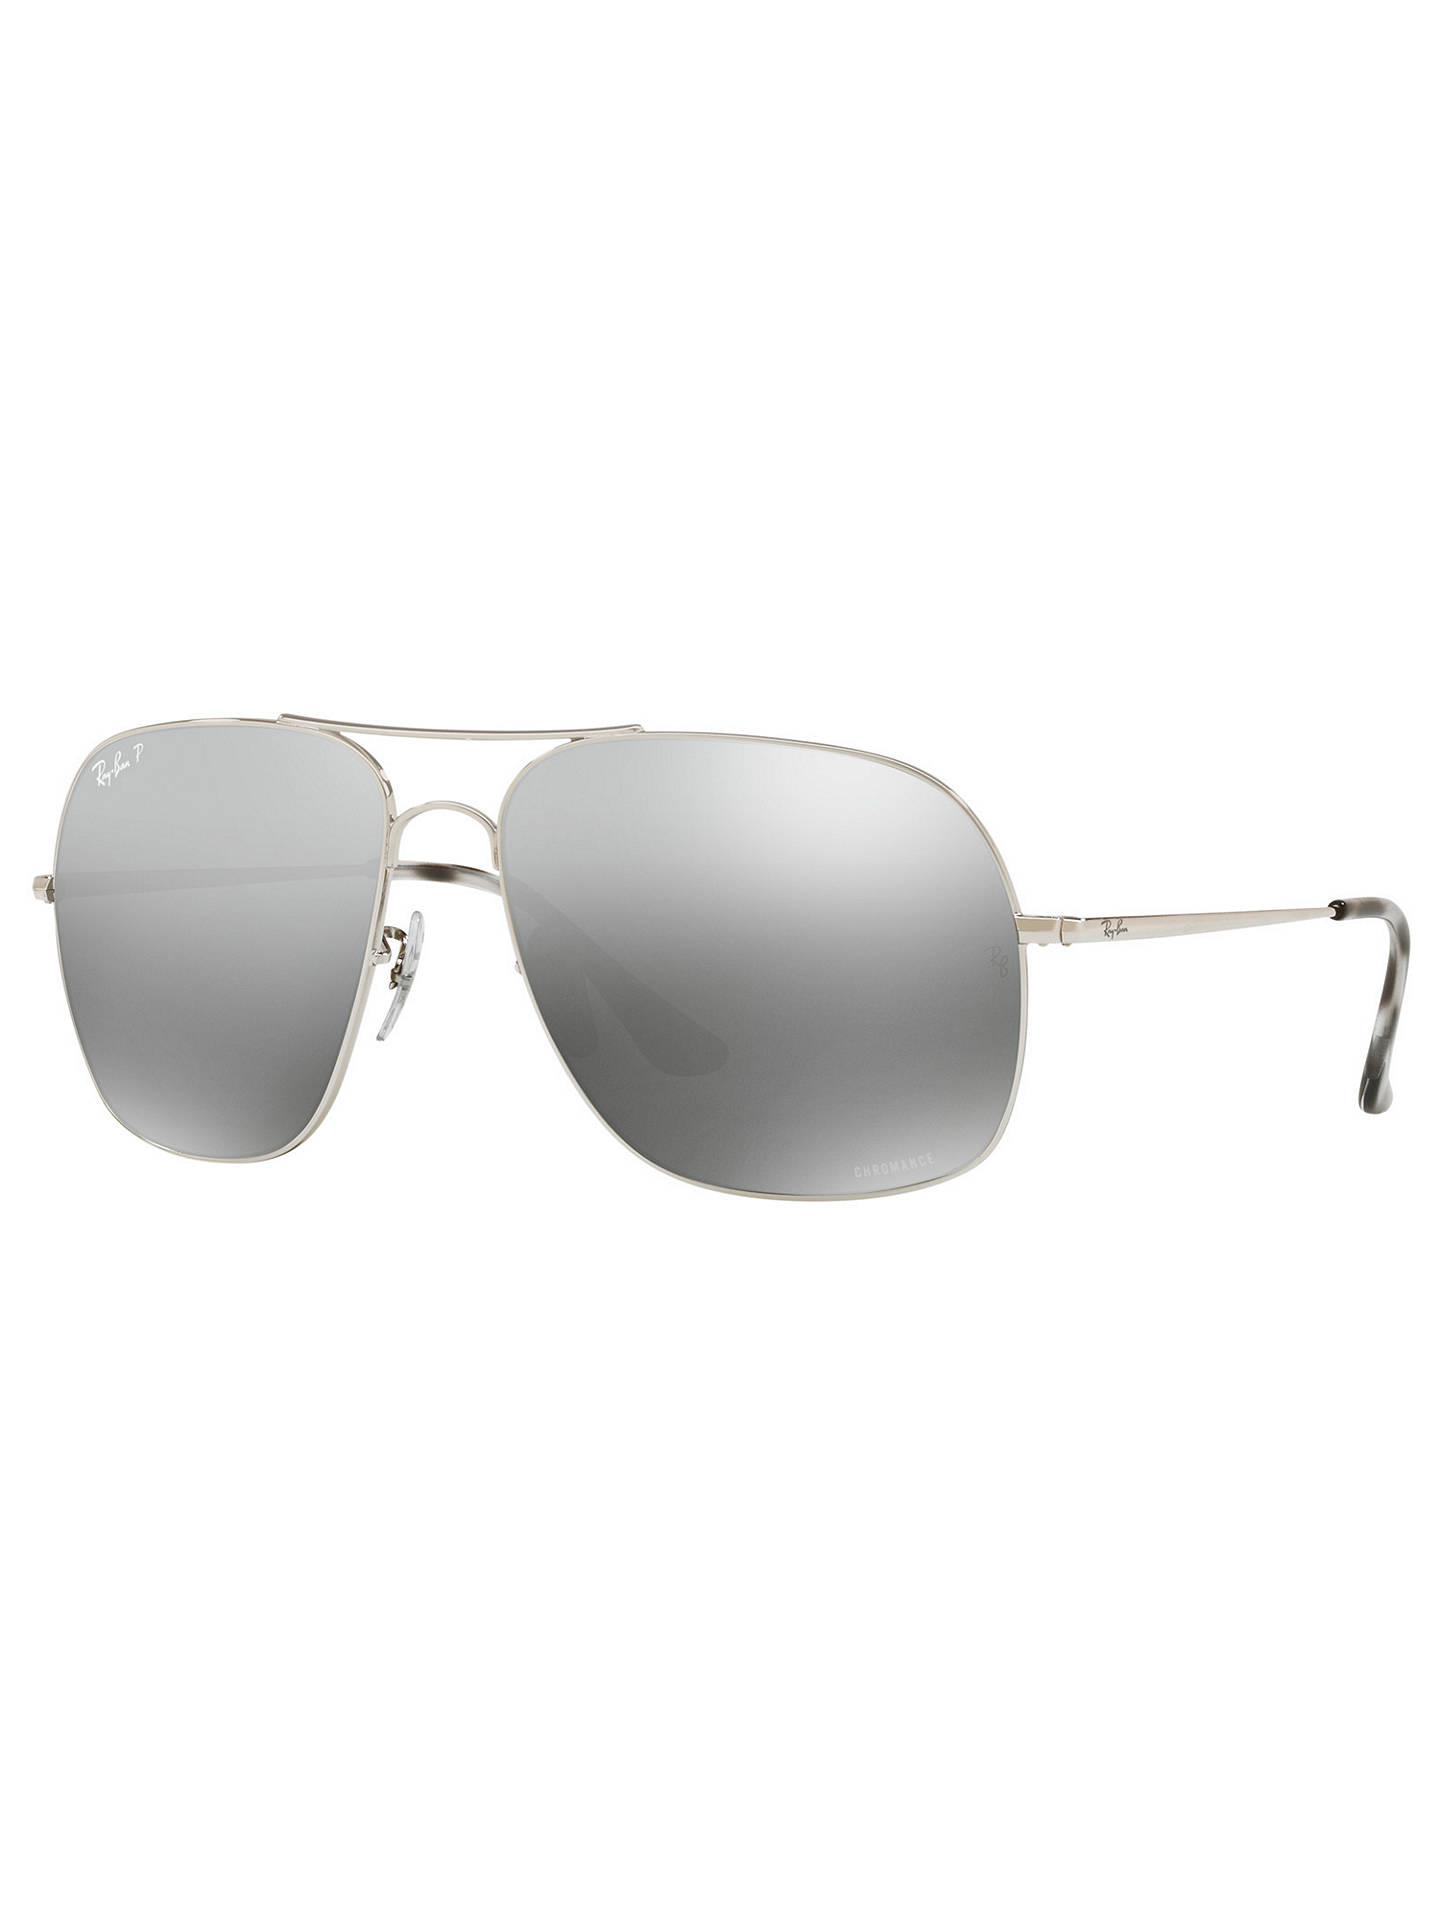 Buy Ray-Ban RB3587 Polarised Square Sunglasses, Silver Online at johnlewis.com